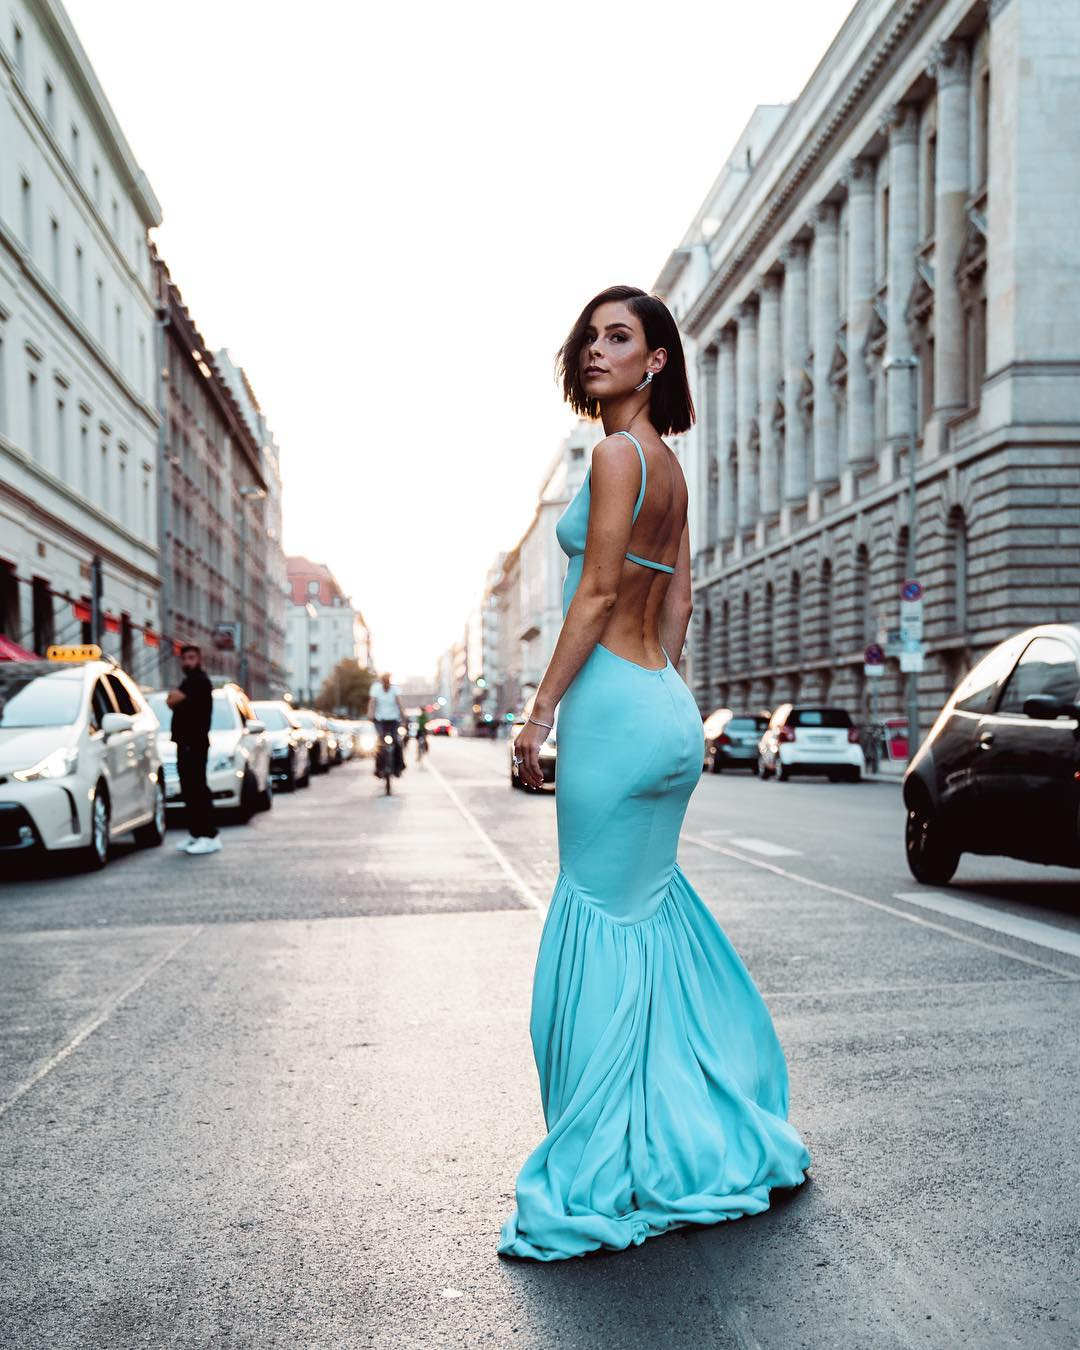 60+ Hot Pictures Of Lena Meyer Landrut are just too yum